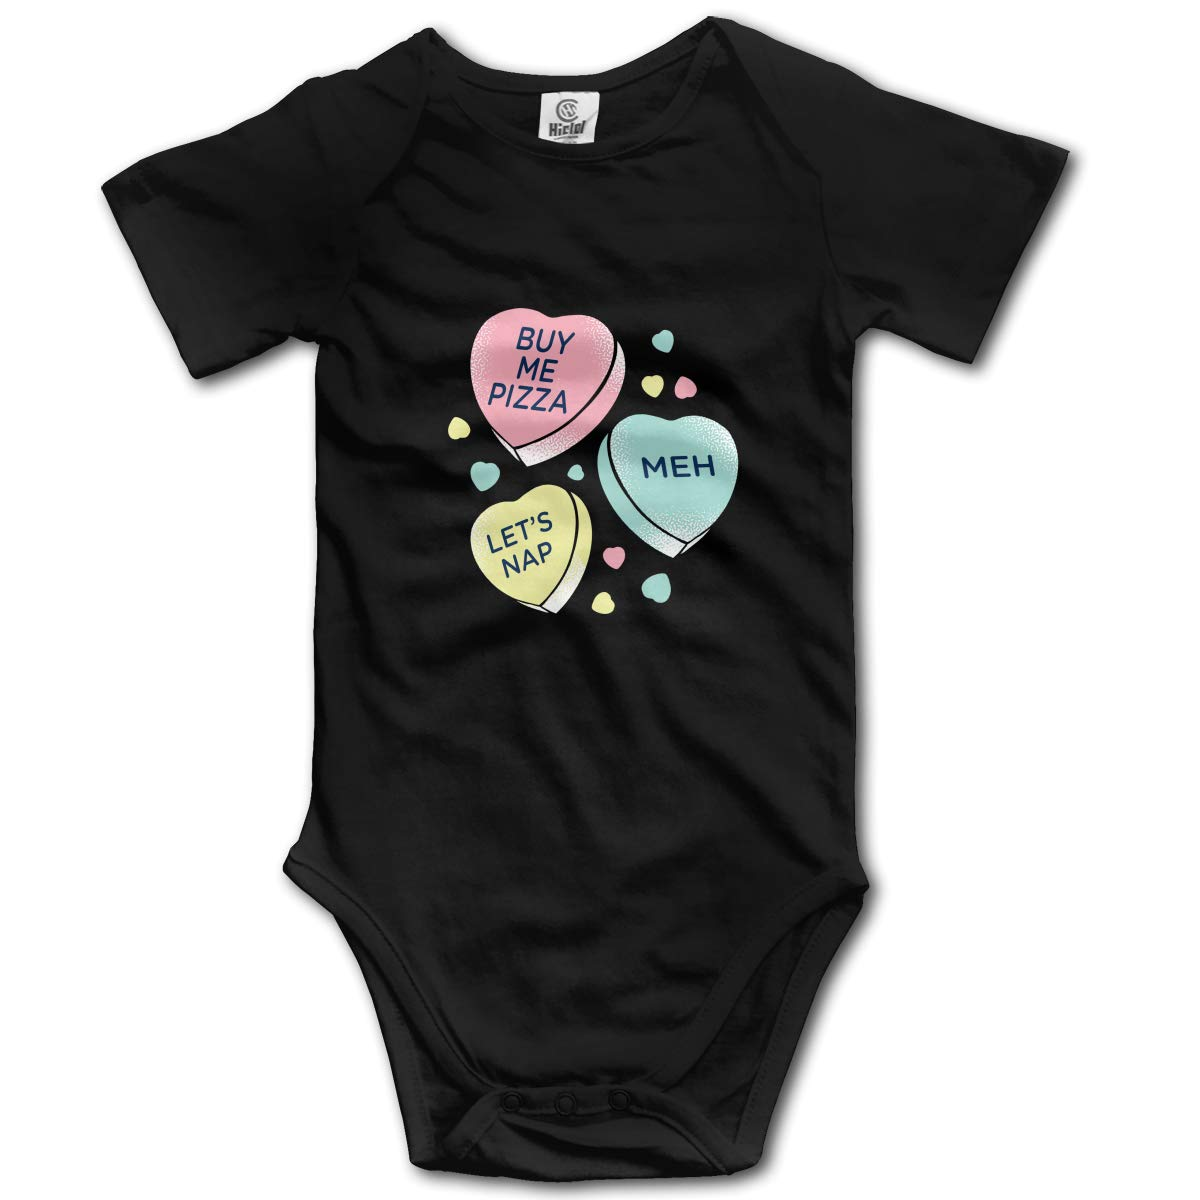 HappyLifea Candy Heart Baby Pajamas Bodysuits Clothes Onesies Jumpsuits Outfits Black